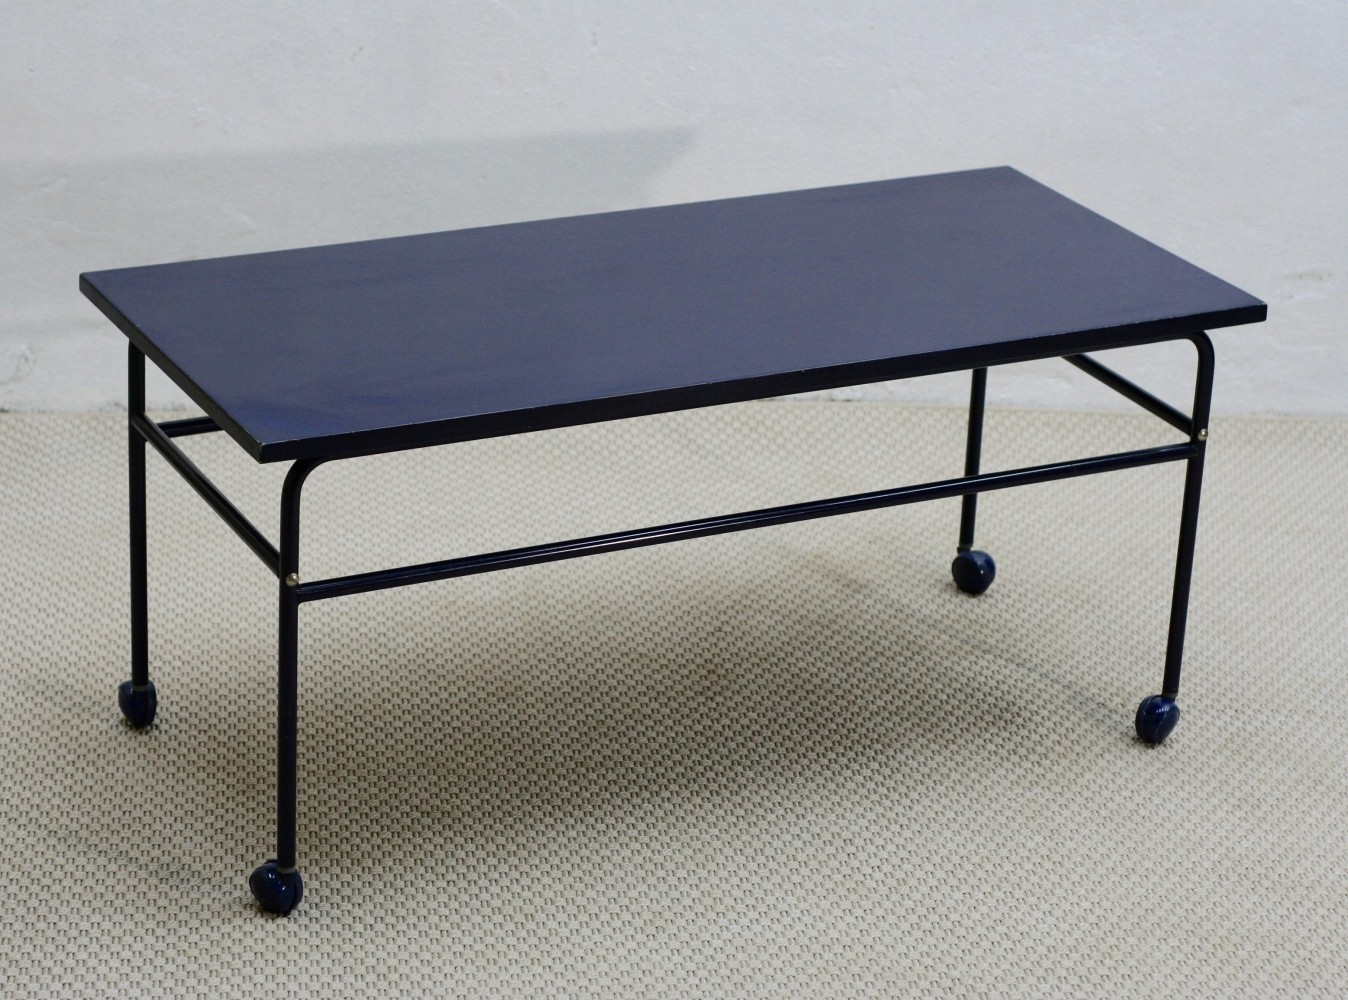 Mid-Century Enameled Blue Metal Coffee Table on Wheels, Sweden 1960s